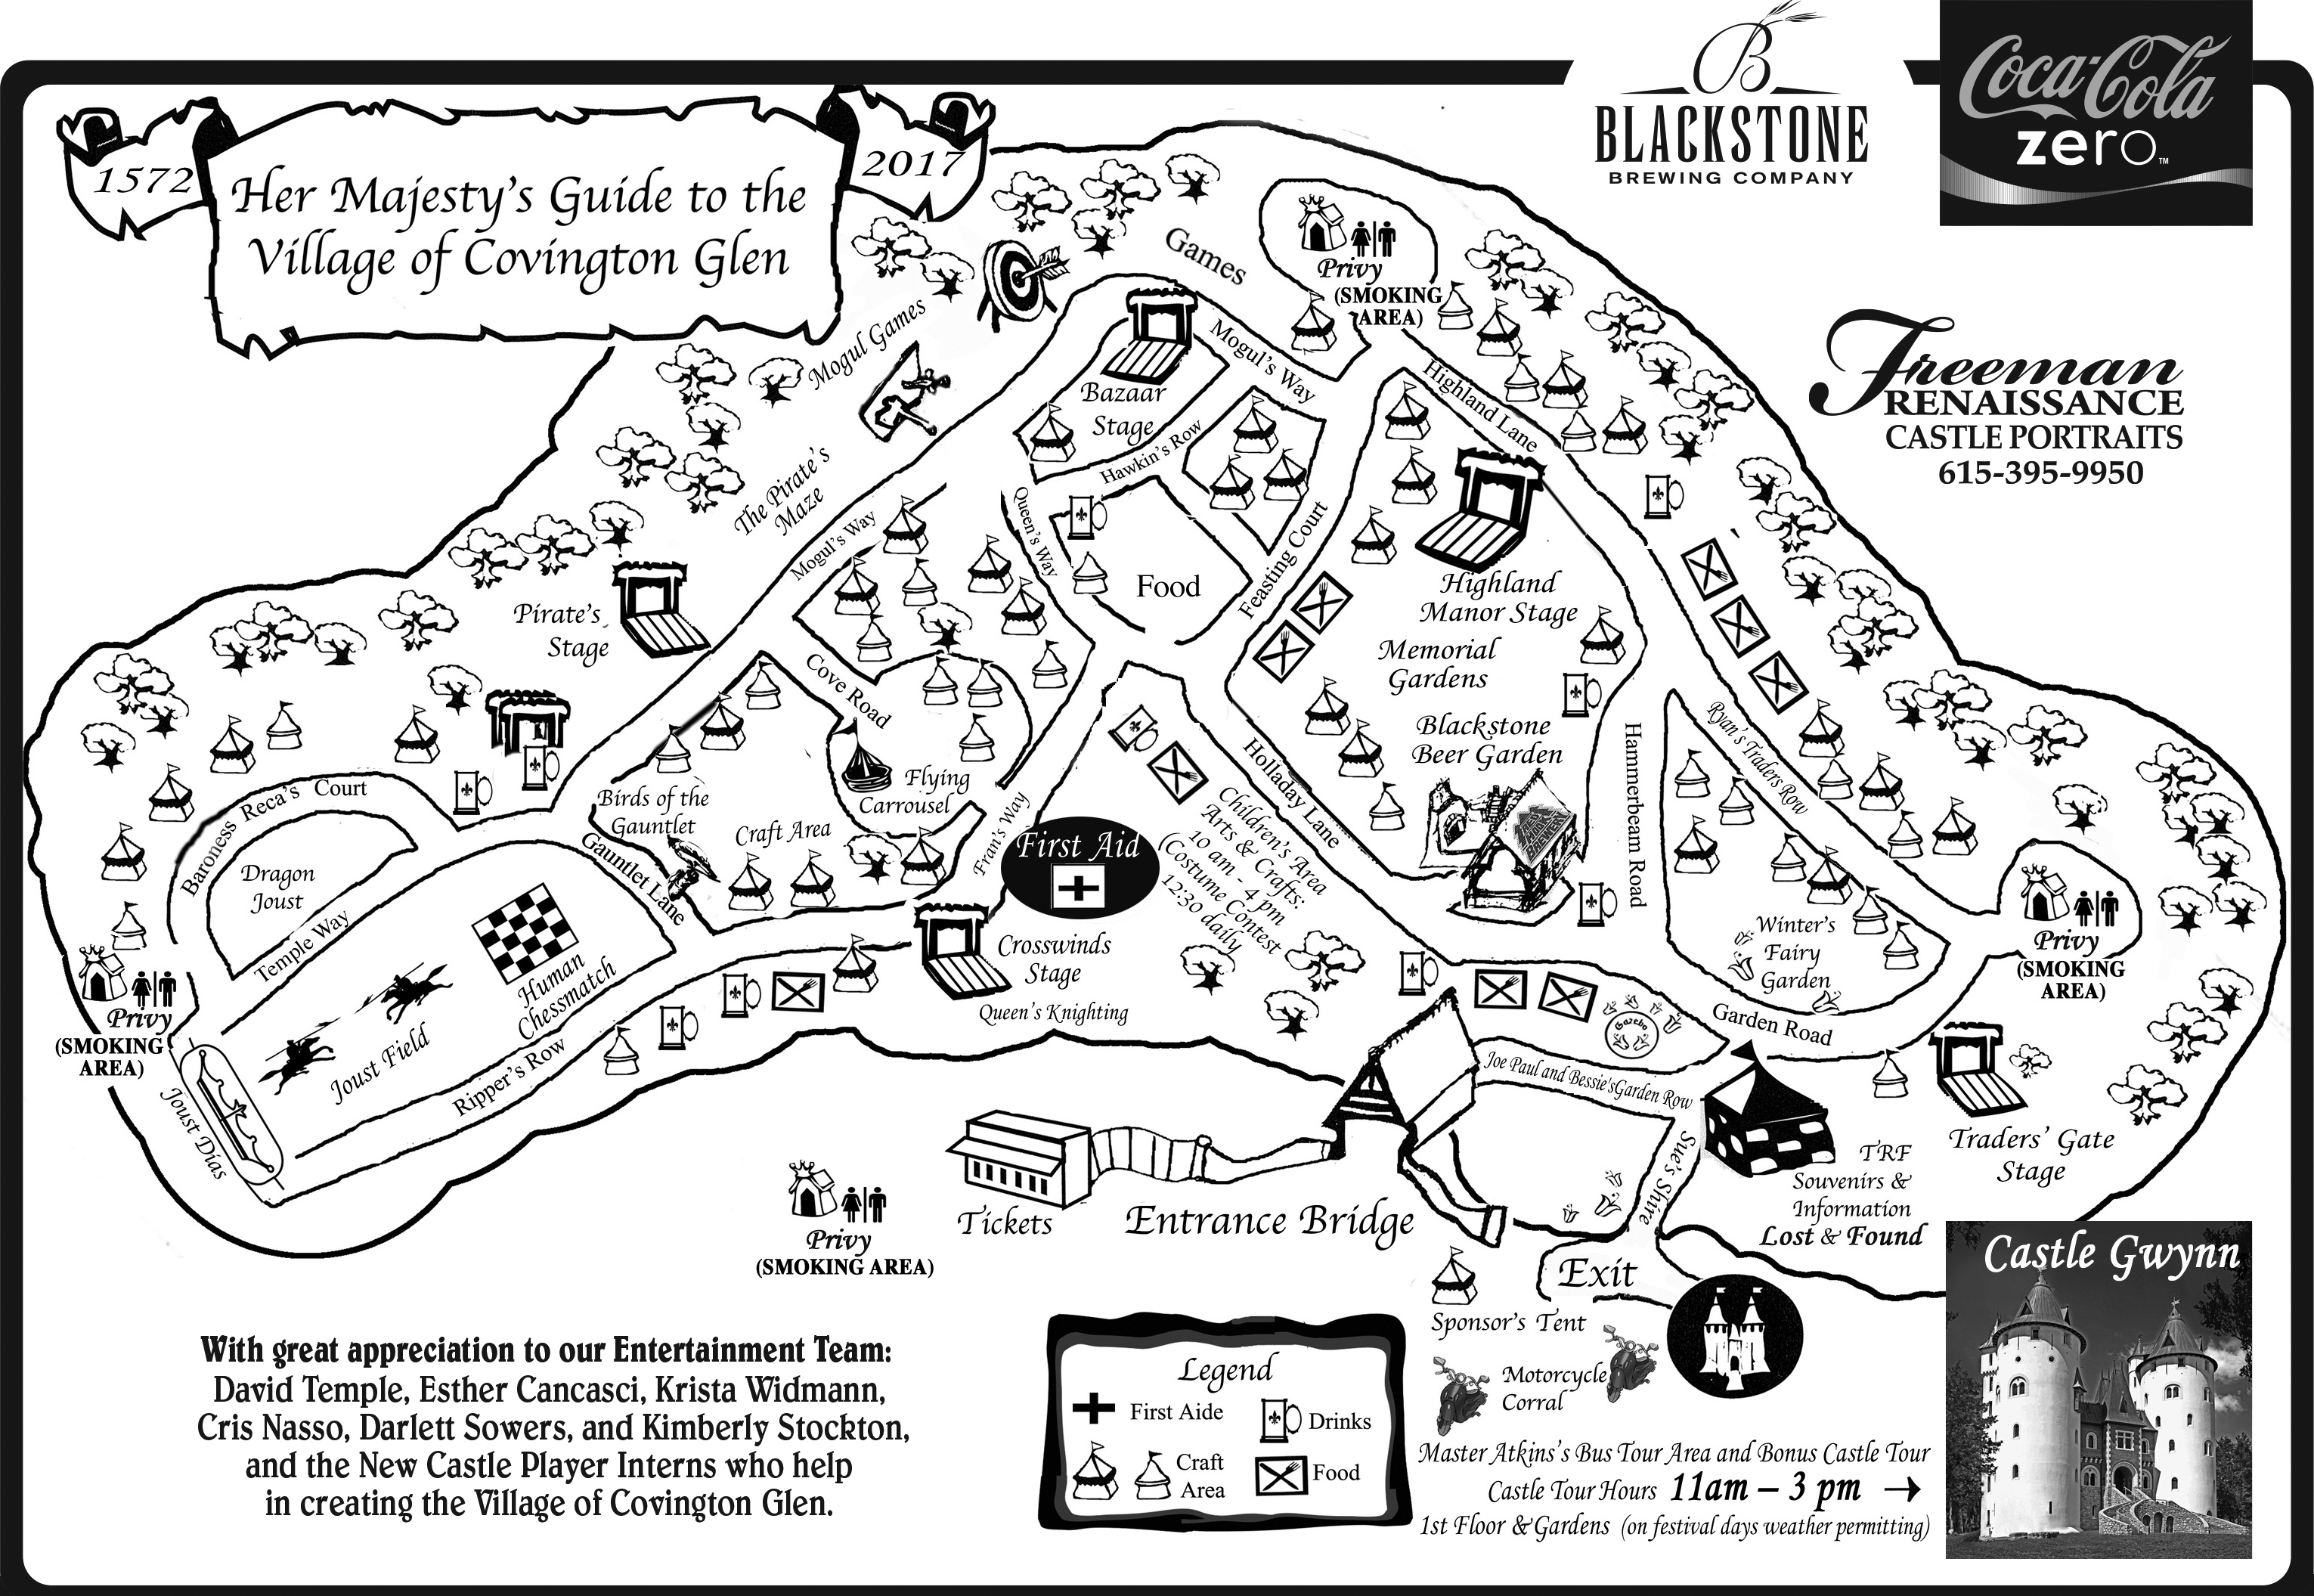 General Festival Information  The Tennessee Renaissance Festival